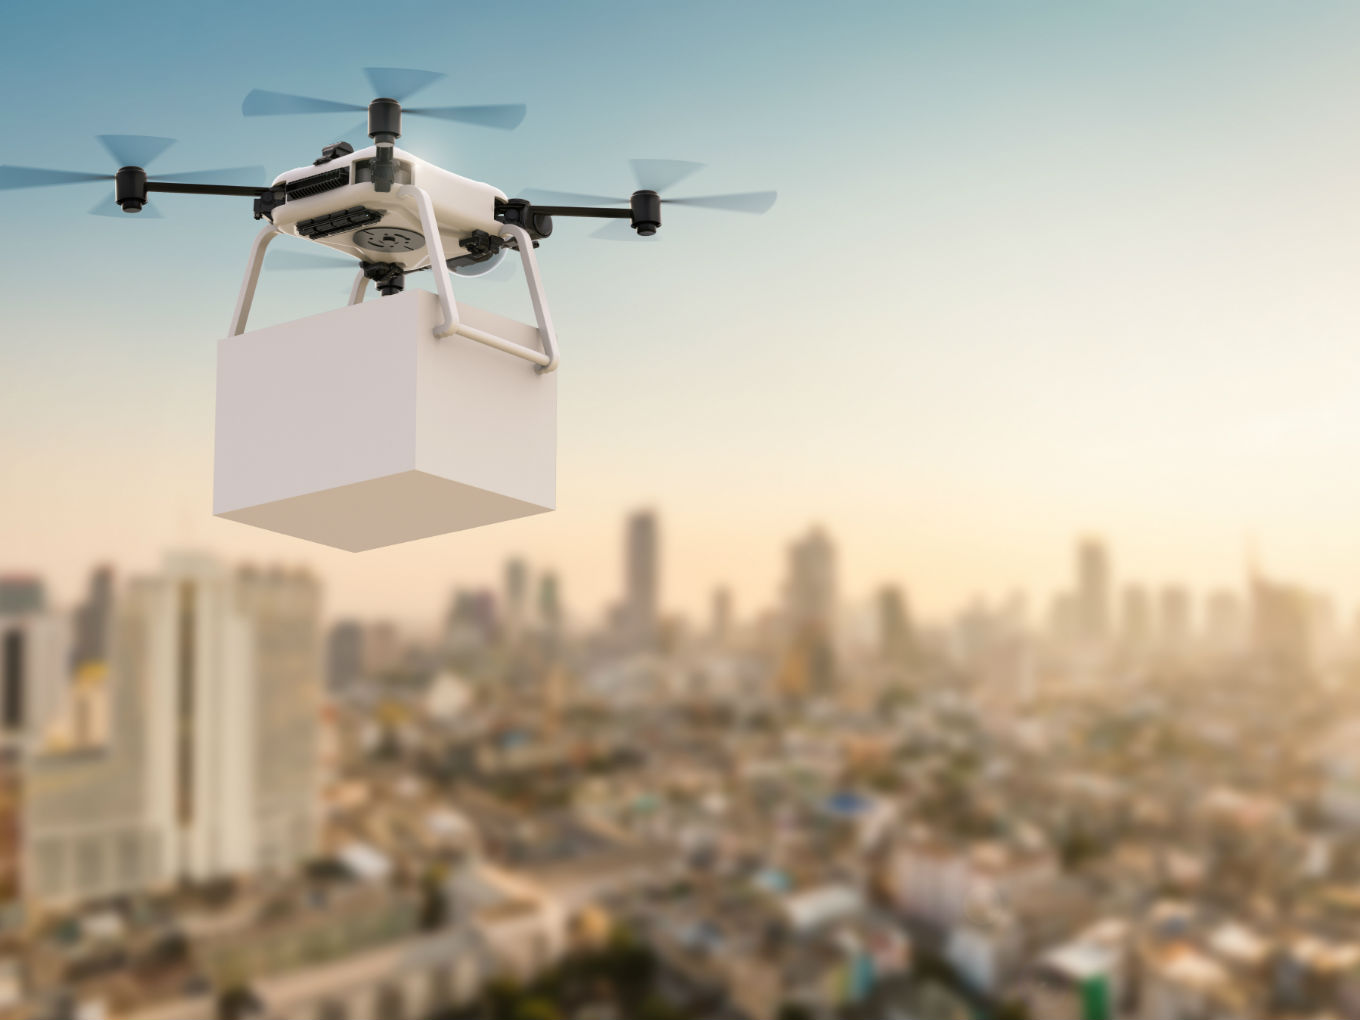 Govt Proposes 'Kill Switch' On Drones To Avoid Mishaps